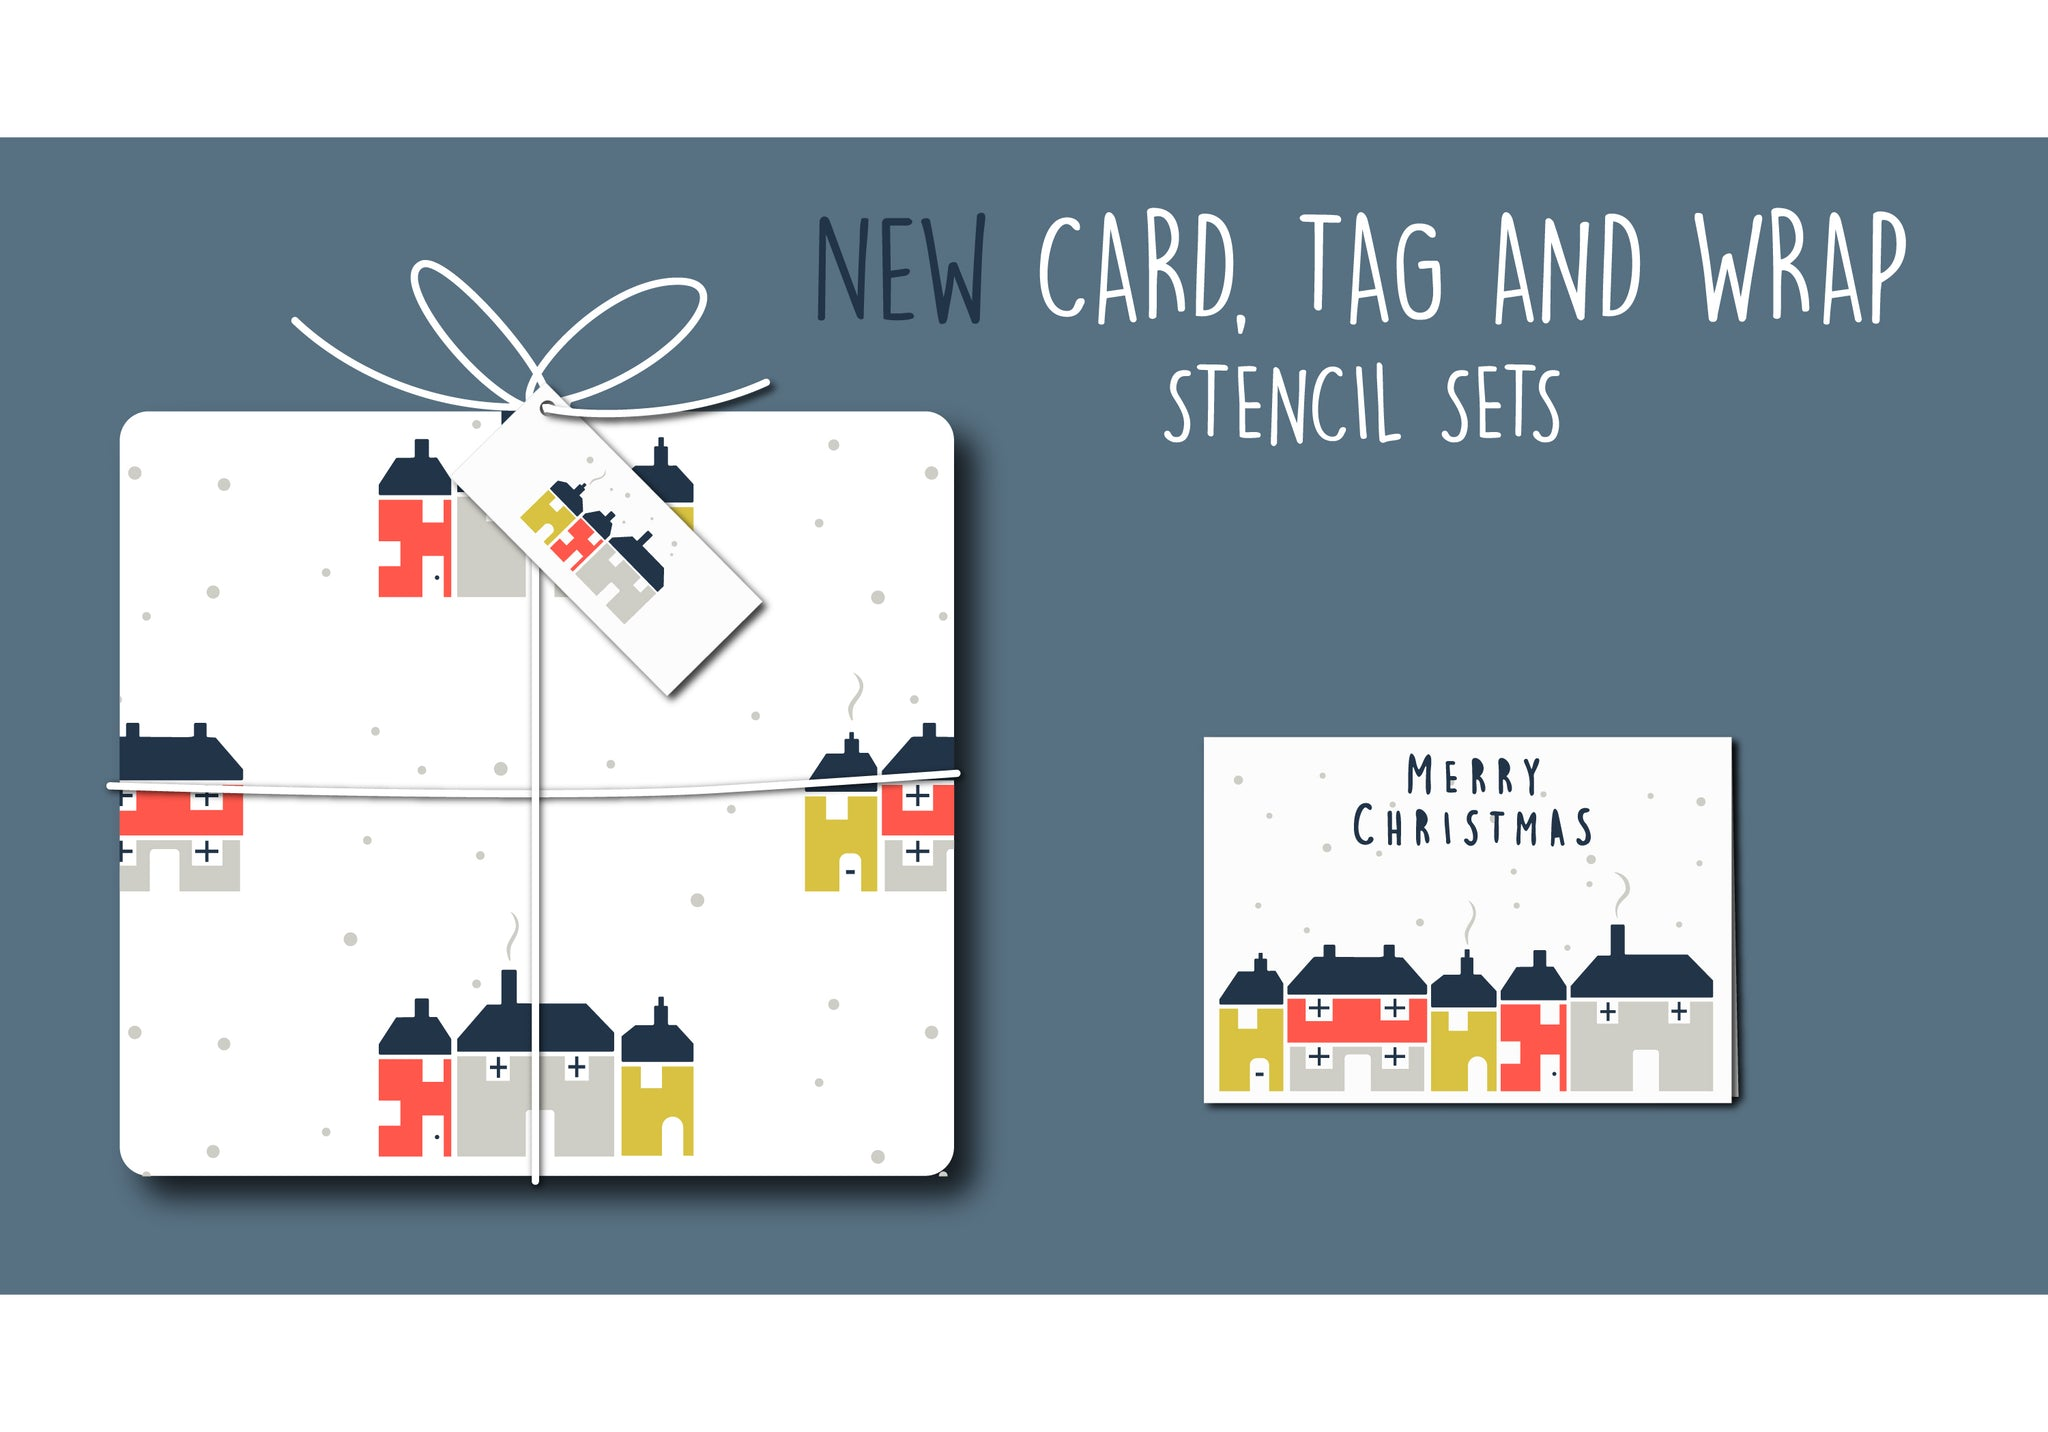 New card, tag and wrap stencil sets